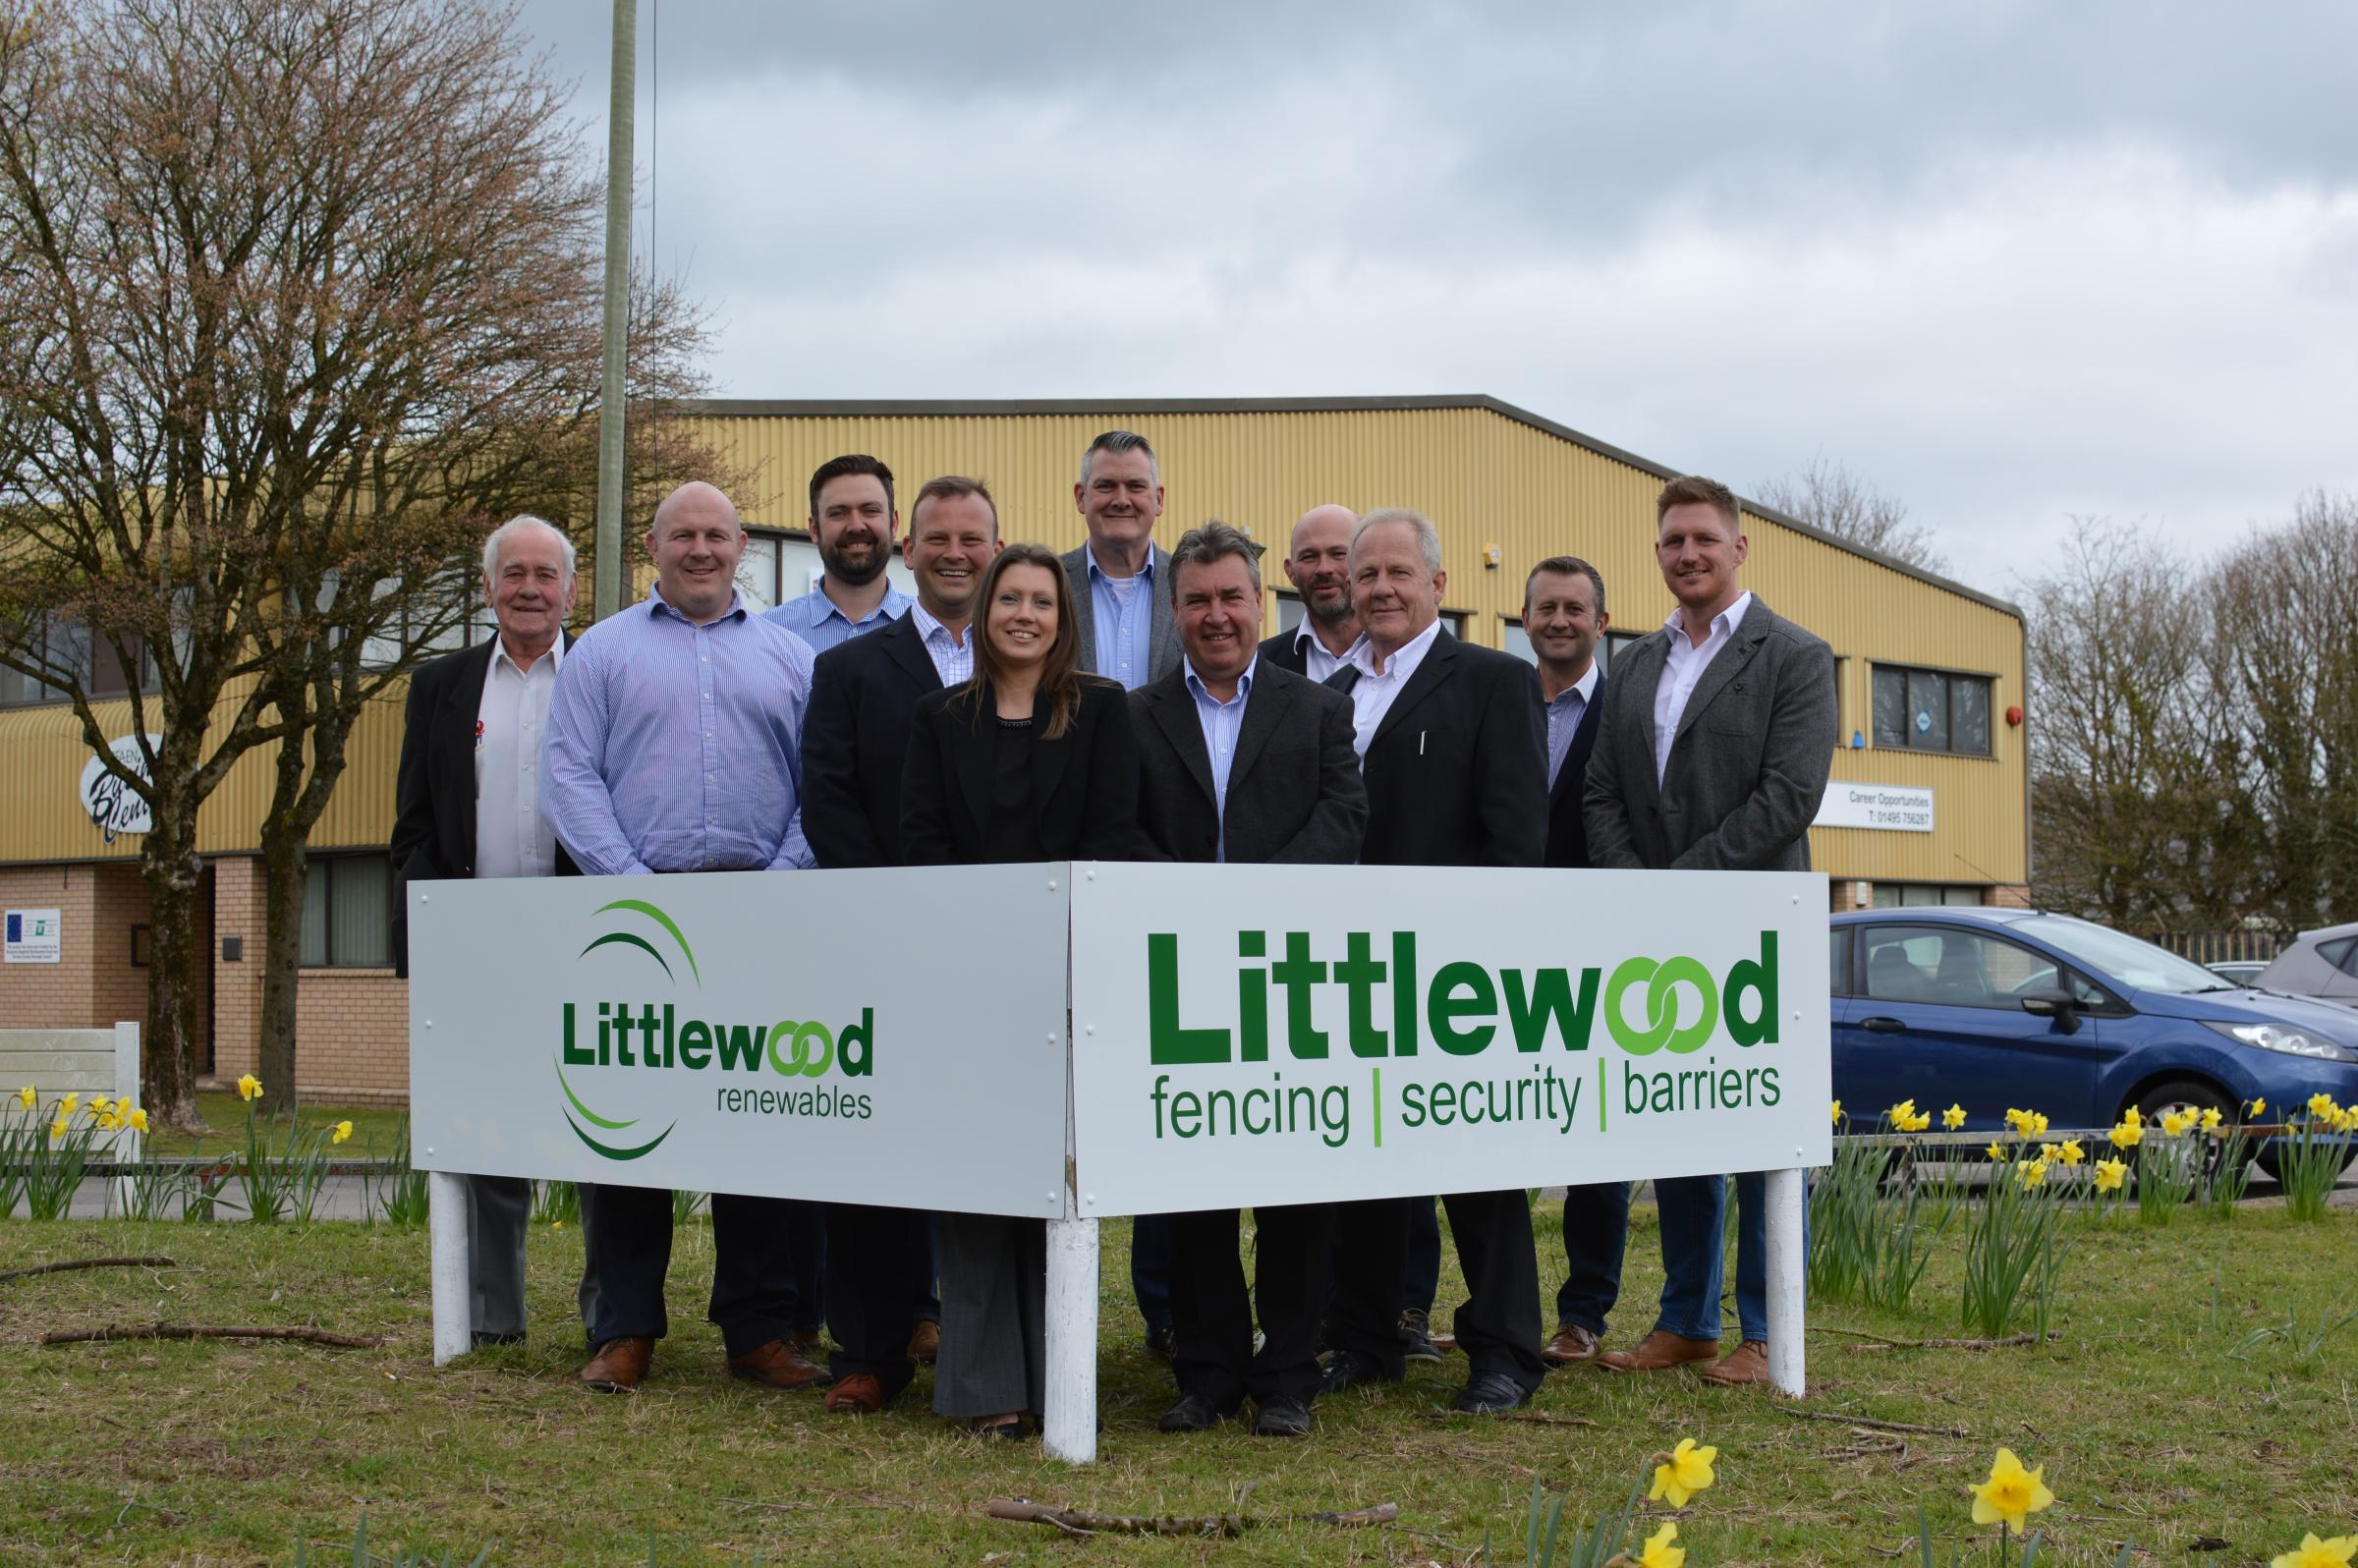 Littlewood Holdings opened a new regional office at Torfaen Business Park in New Inn